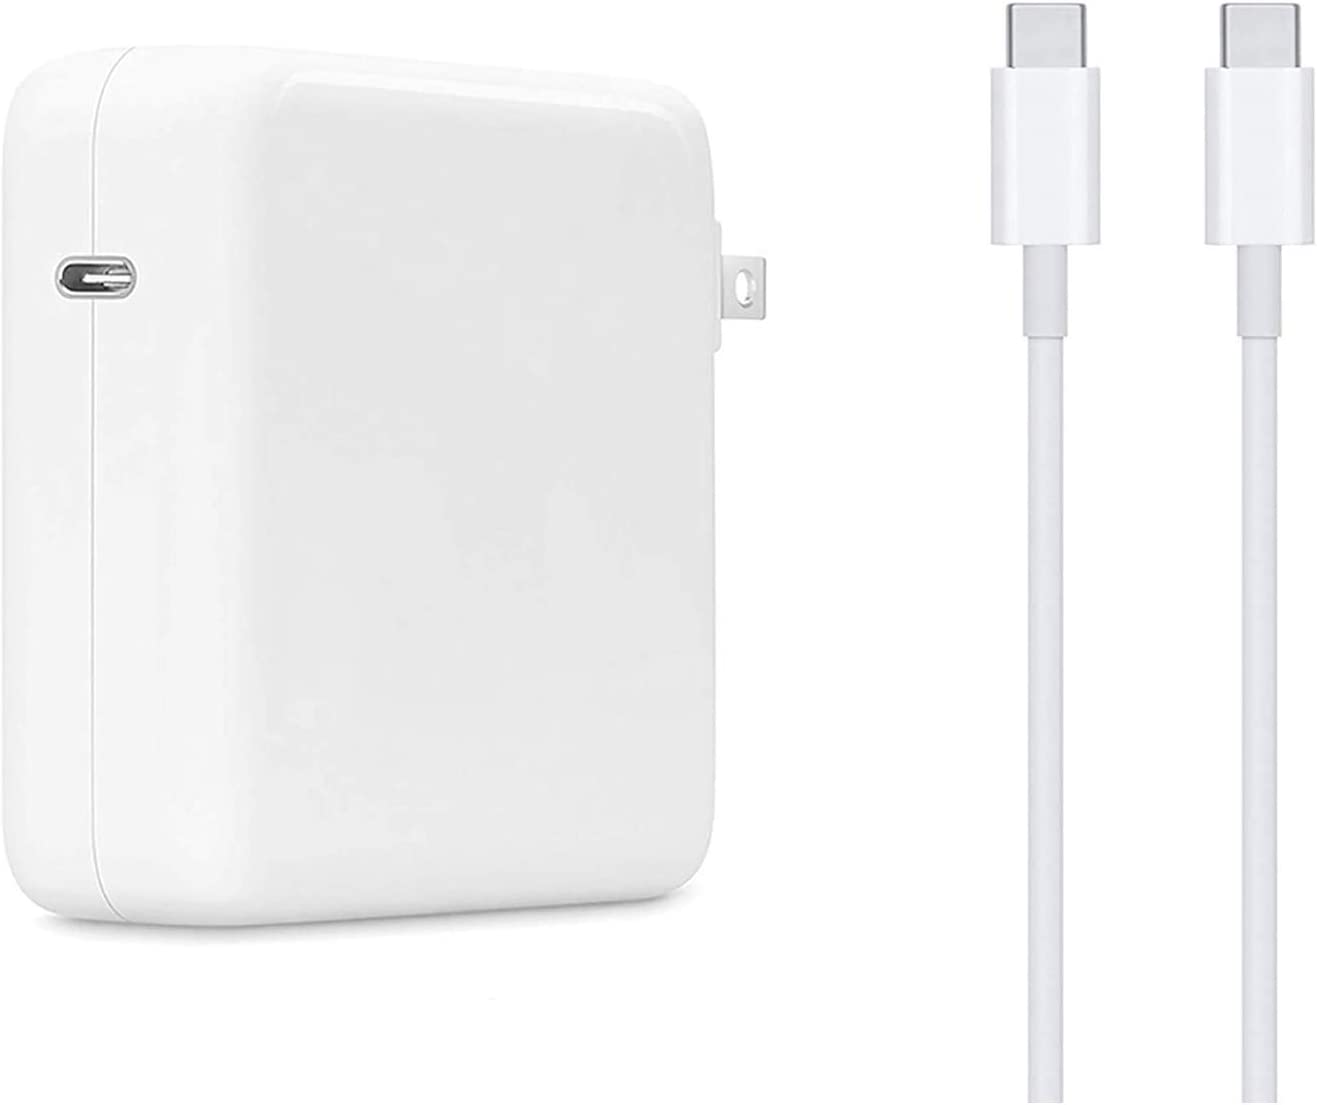 Replacement Mac Book Pro Charger, 61W USB C Power Adapter for MacBook Pro 2016/2017/2018/2019/ 2020, MacBook Air 2018/2020, MacBook 2015/2016/2017, iPad 2018/2020, Included 6.6ft USB-C to C Cable